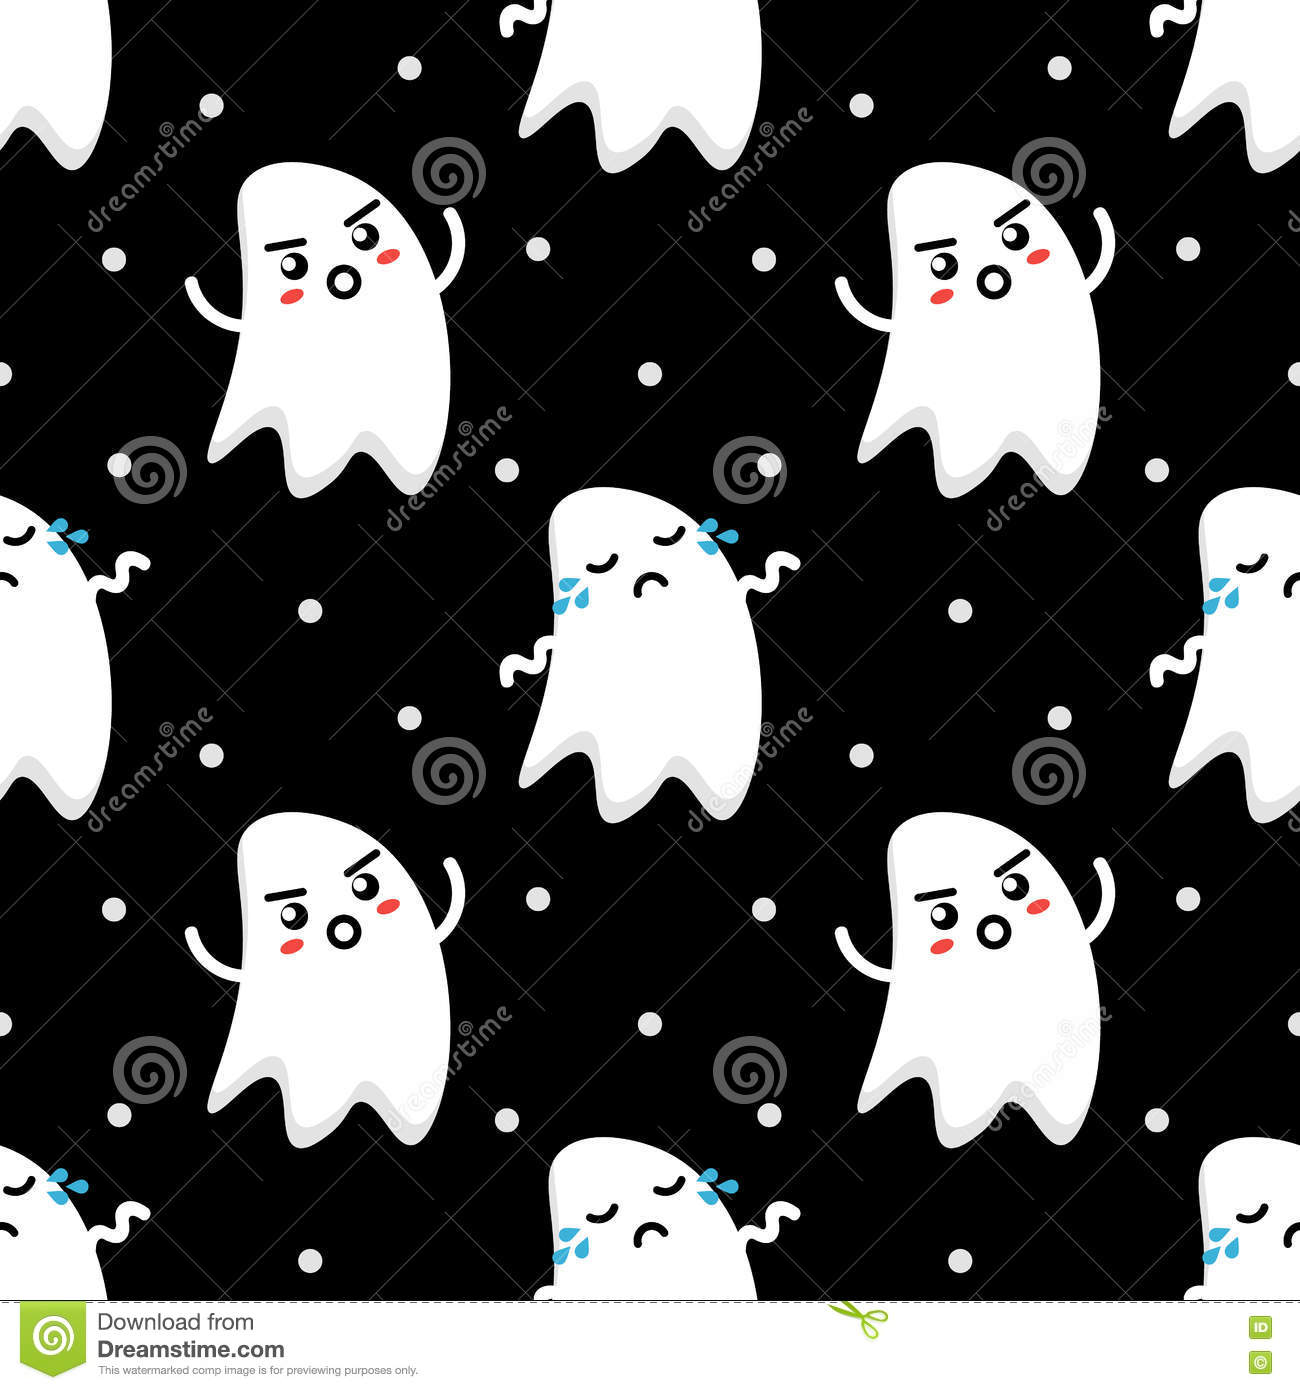 Ghosts couple stock illustration 76861876 for Www dreamhome com